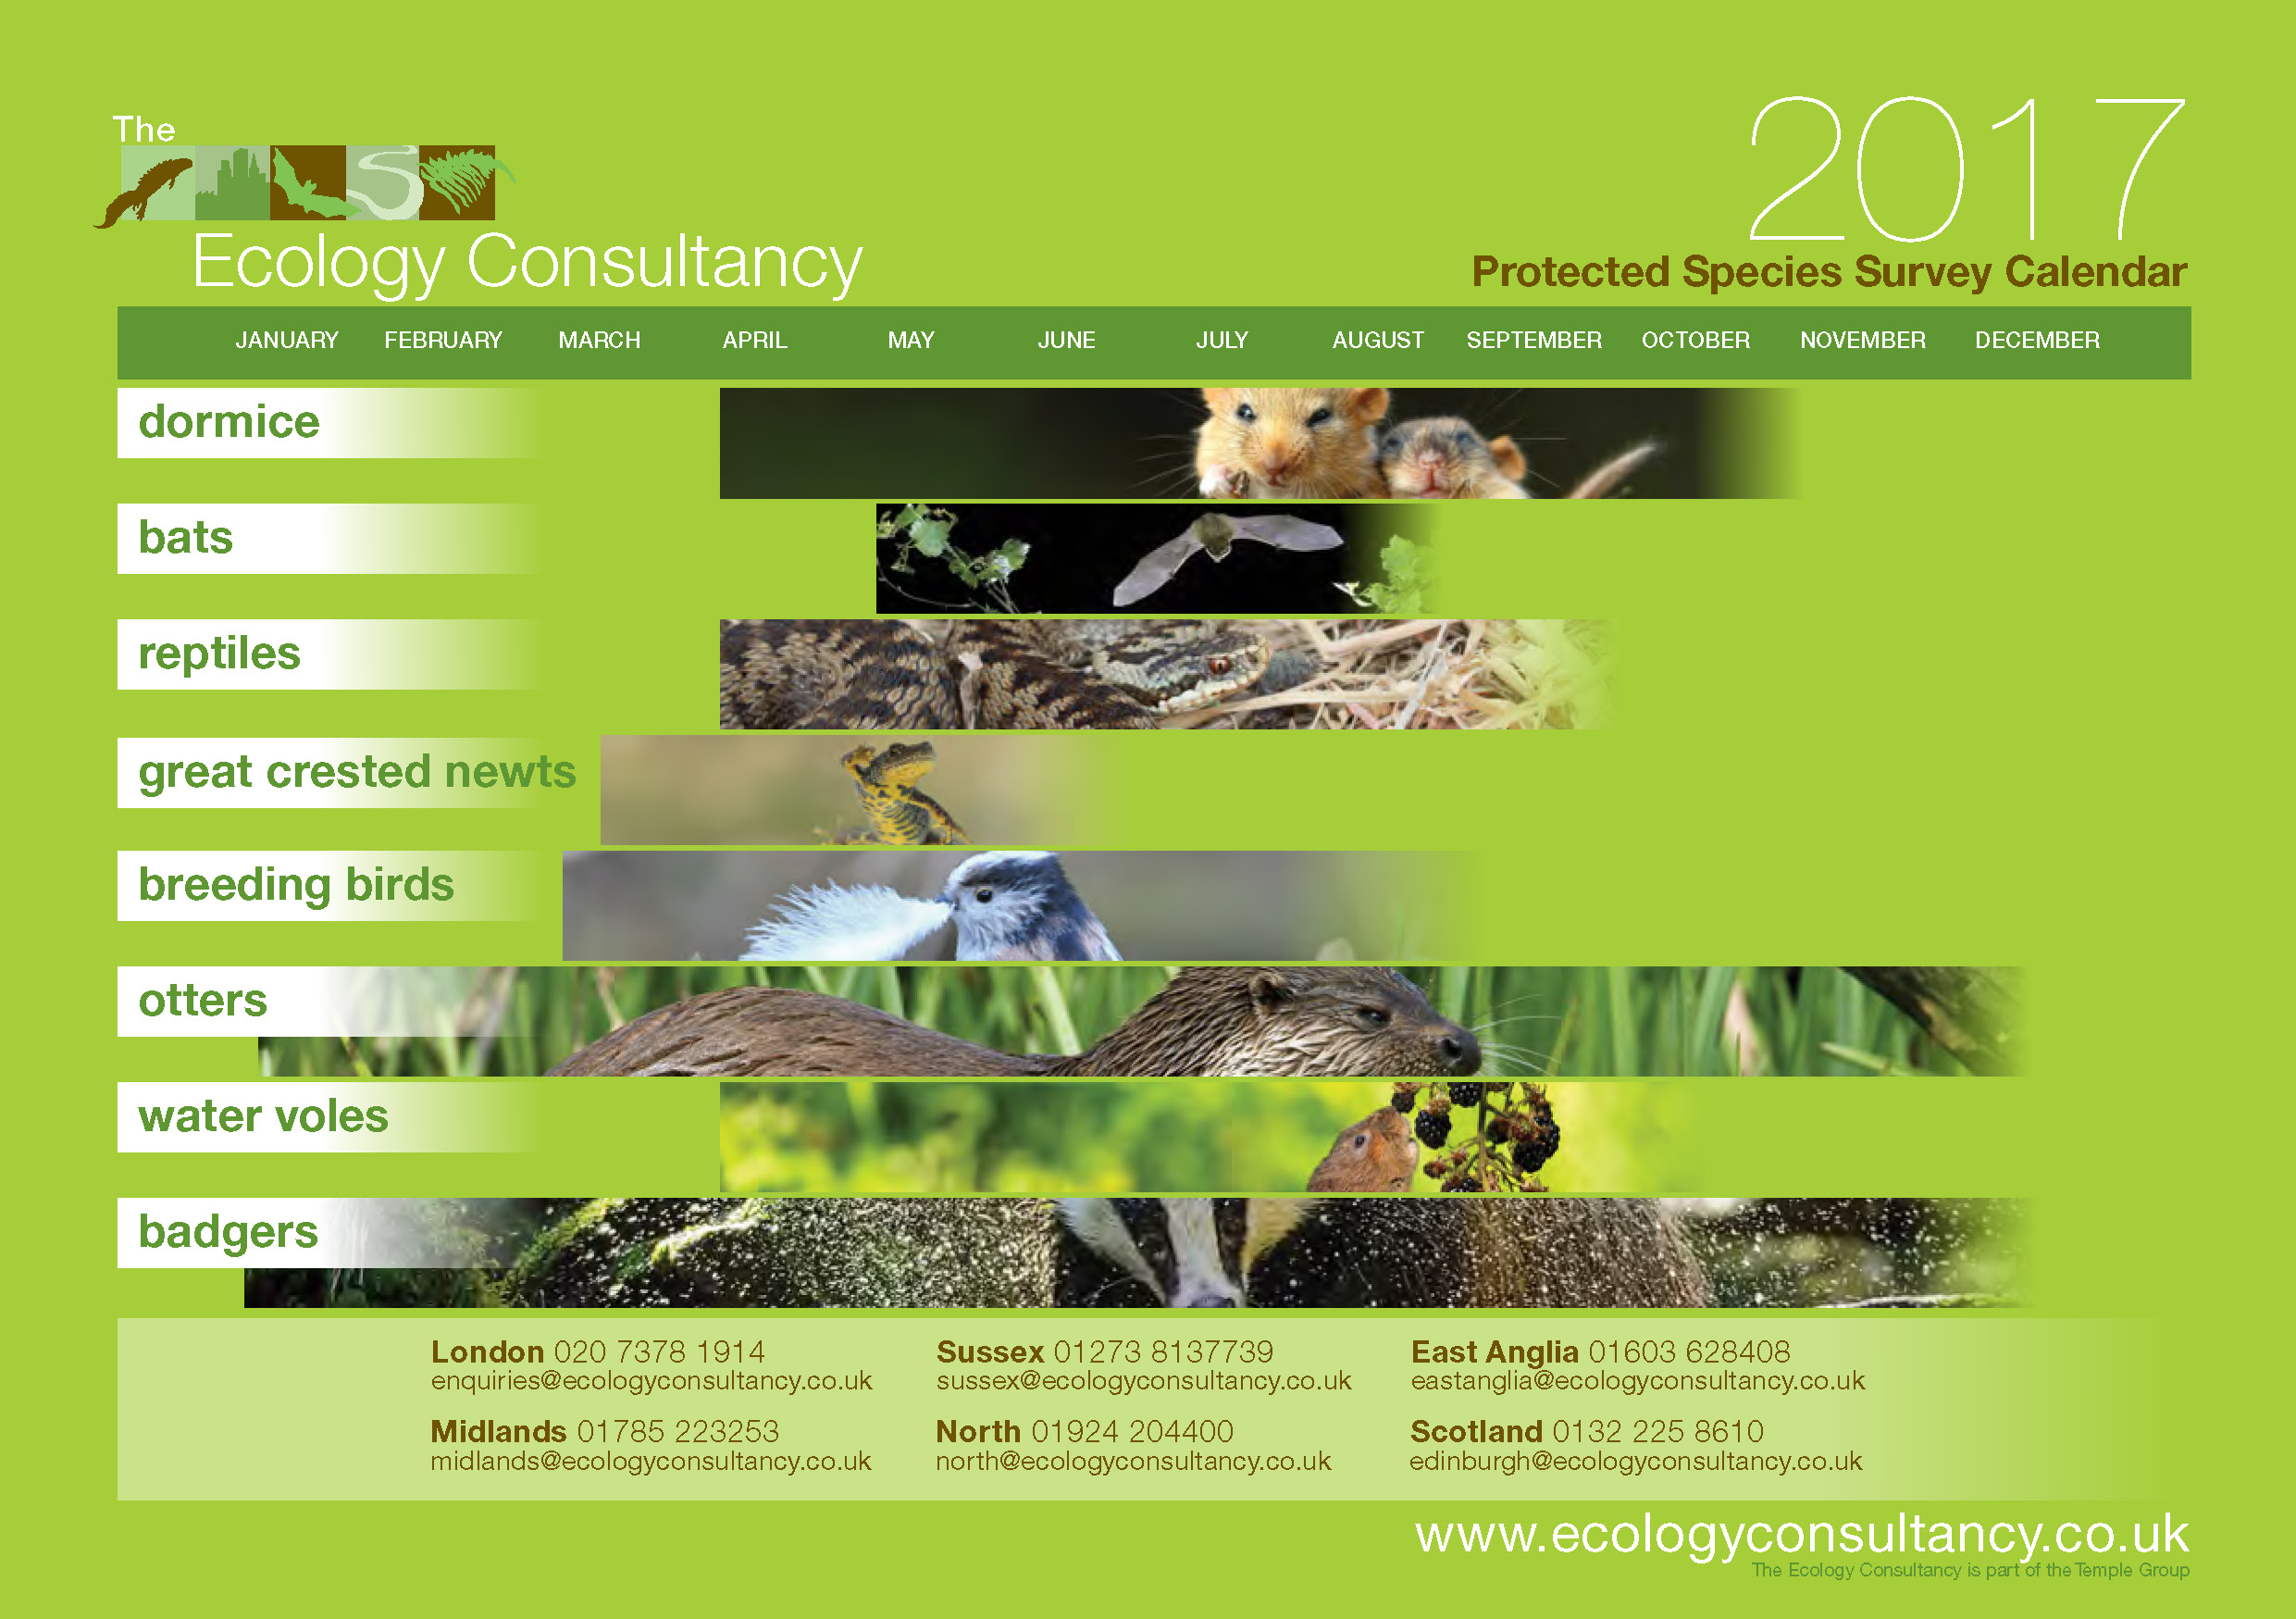 Protected Species Survey Calendar The Ecology Consultancy